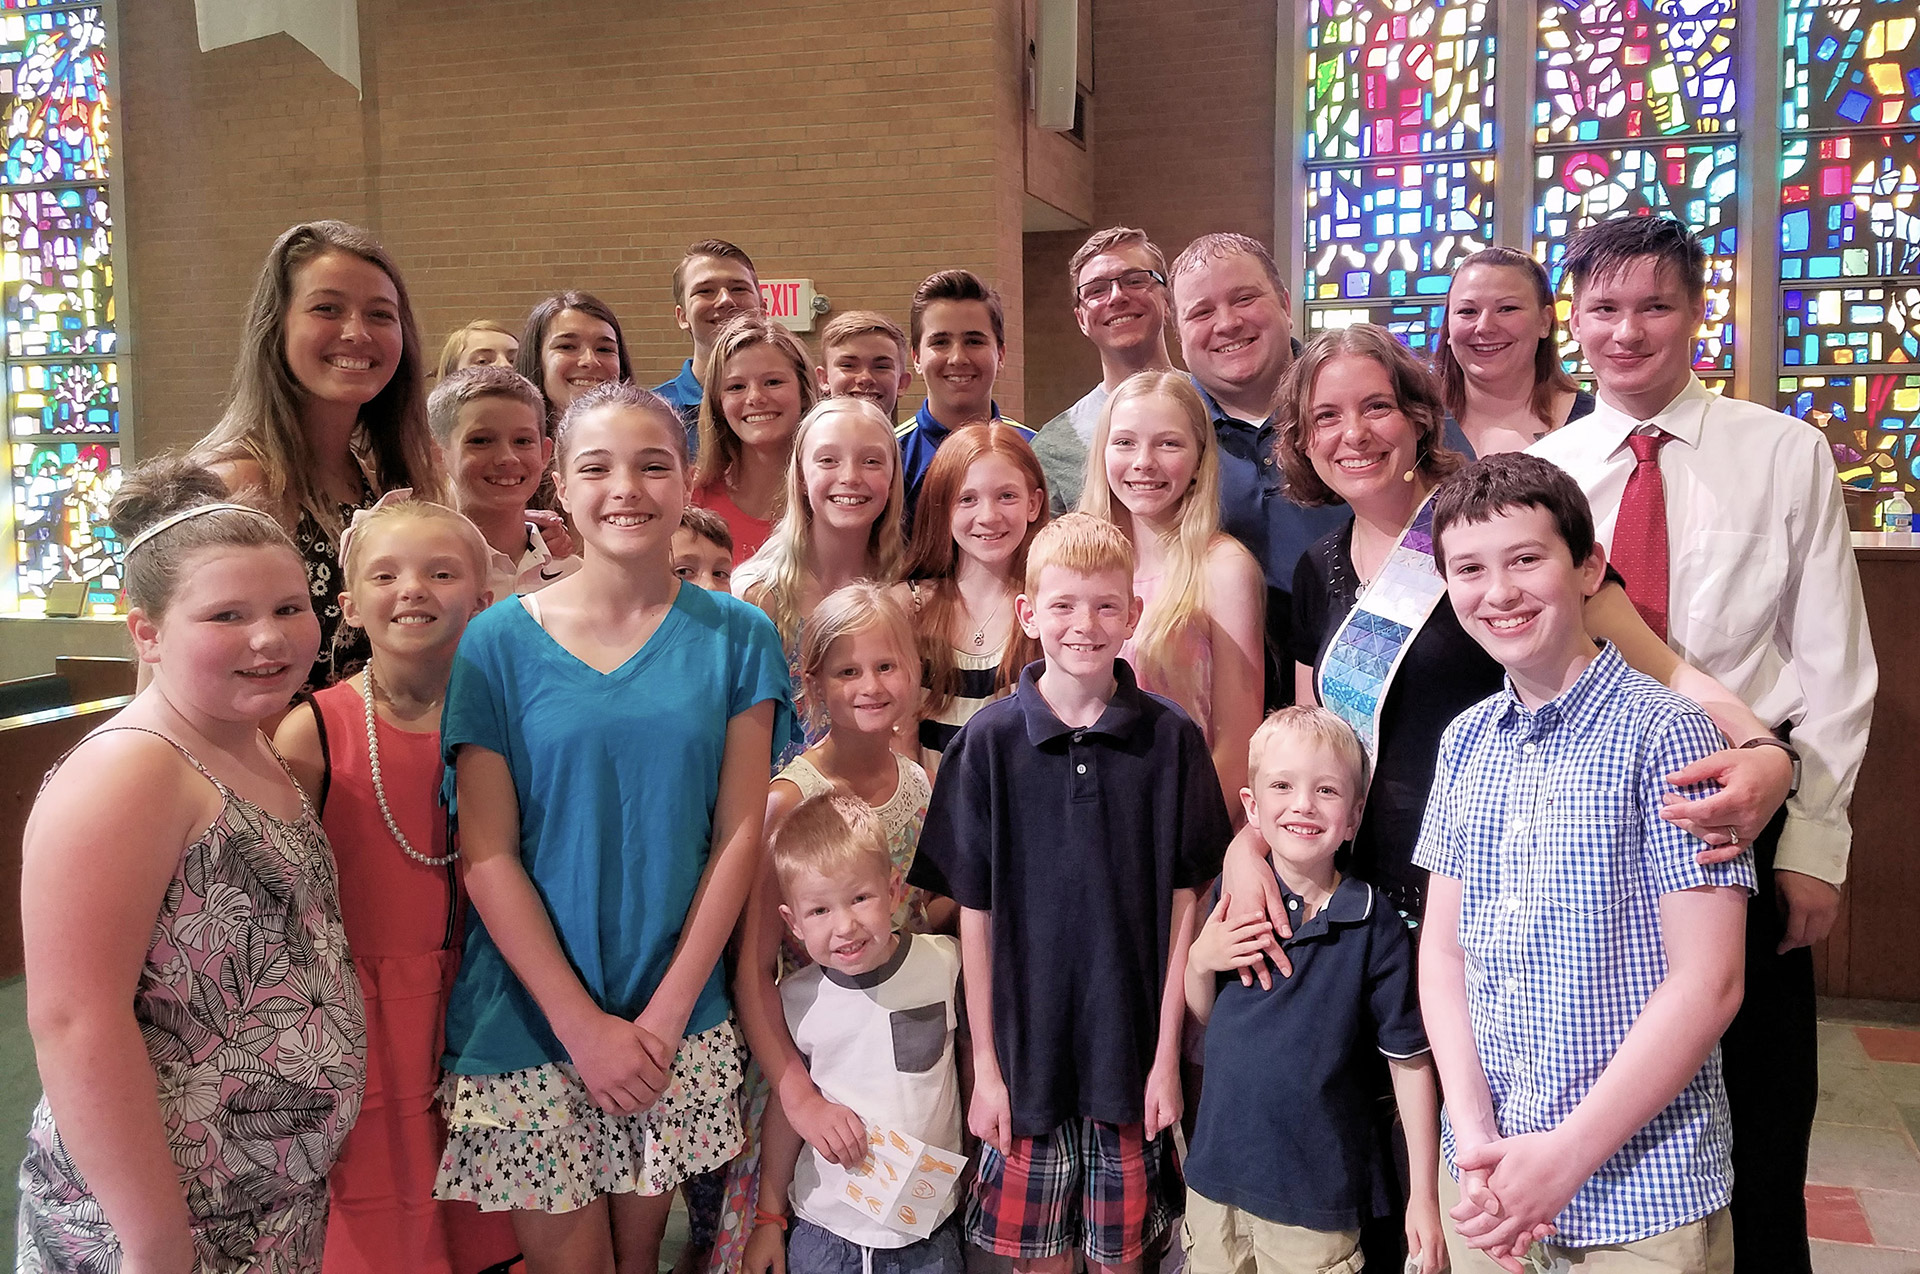 Rev. Cathy Pittenger with young people of Waterford Central UMC